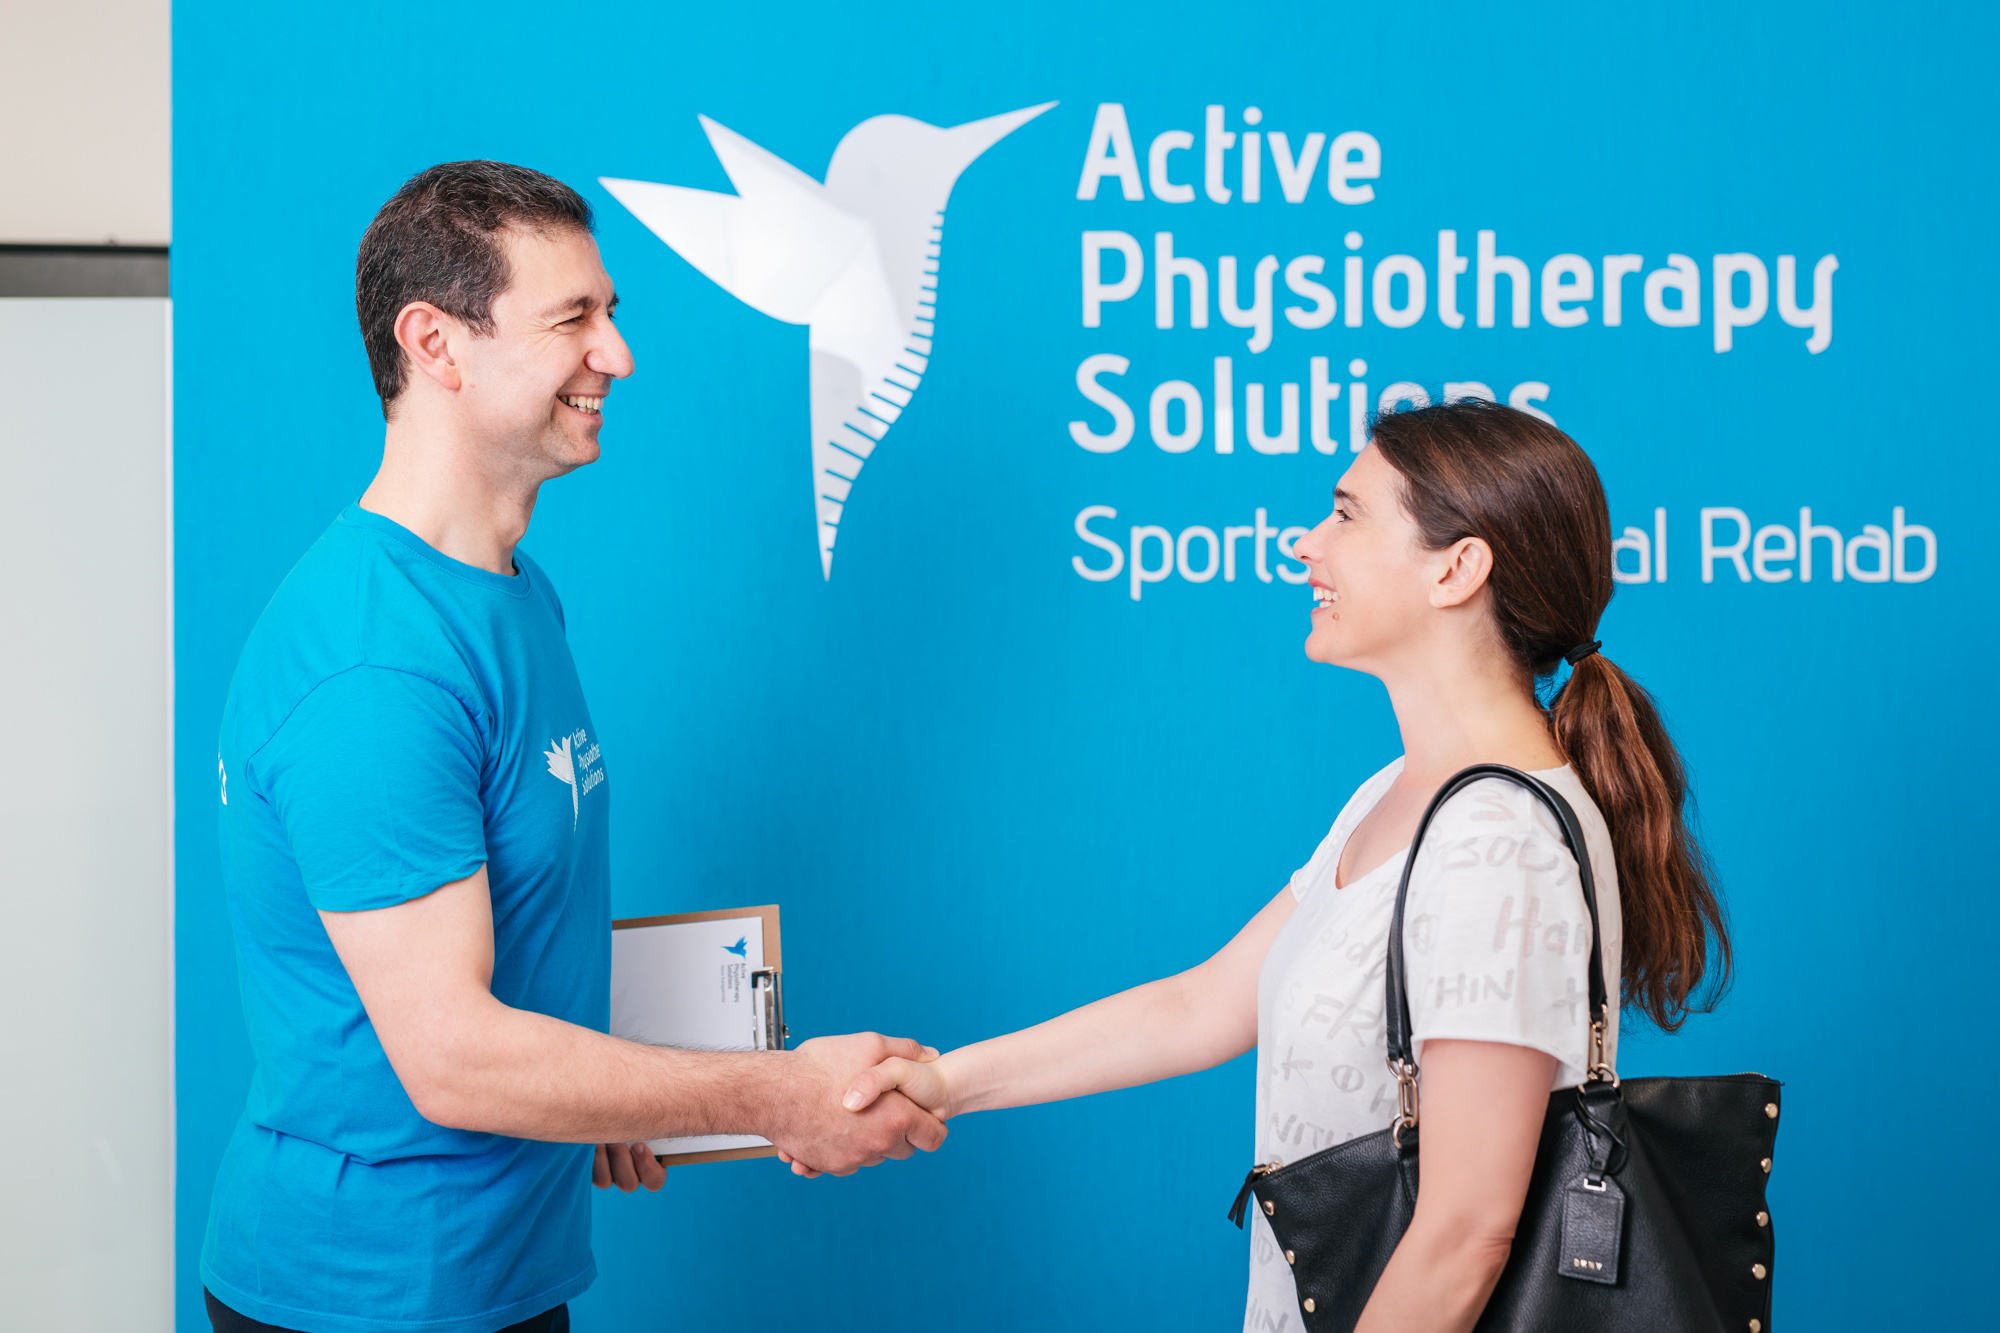 Active Physiotherapy Solutions - Physiotherapist Alexandros Karagiannidis with patient